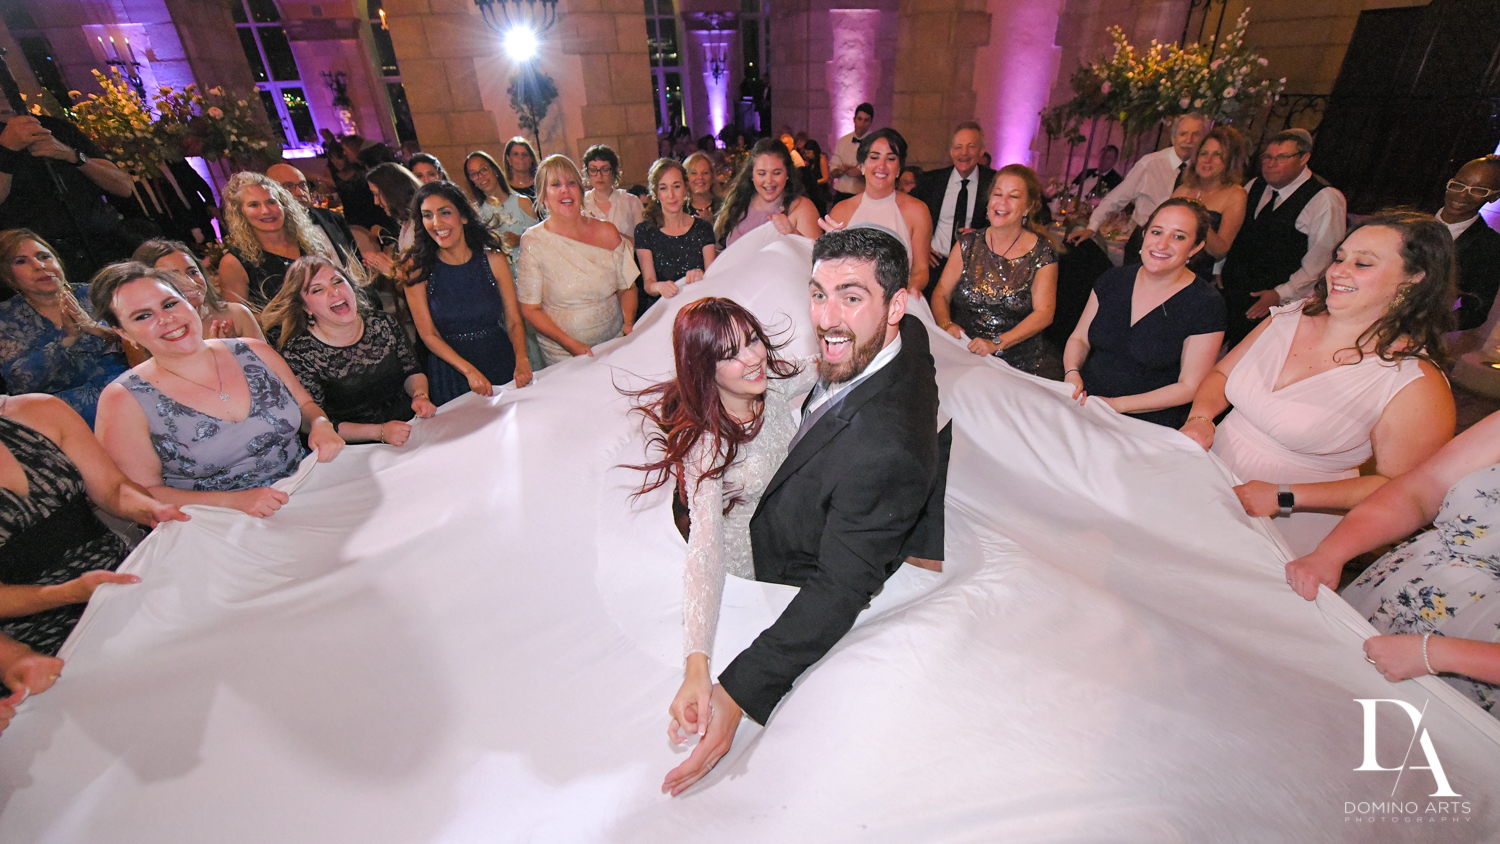 fun reception at Vintage Garden Wedding at Flagler Museum Palm Beach by Domino Arts Photography